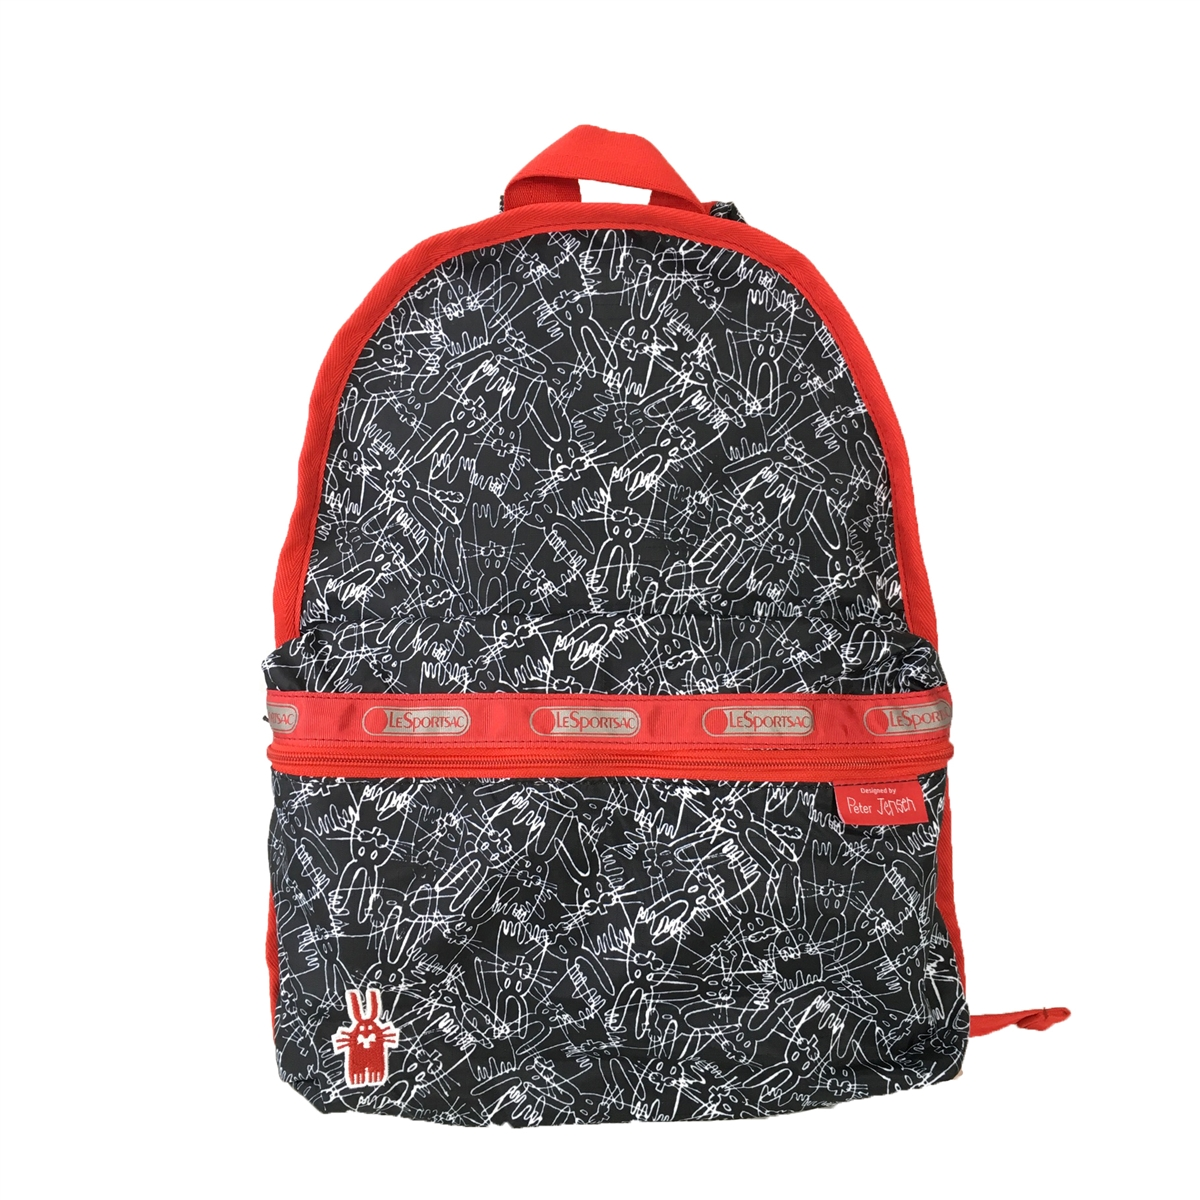 e67b5f1c5 LeSportsac x Peter Jensen Basic Backpack, Scribble Rabbits